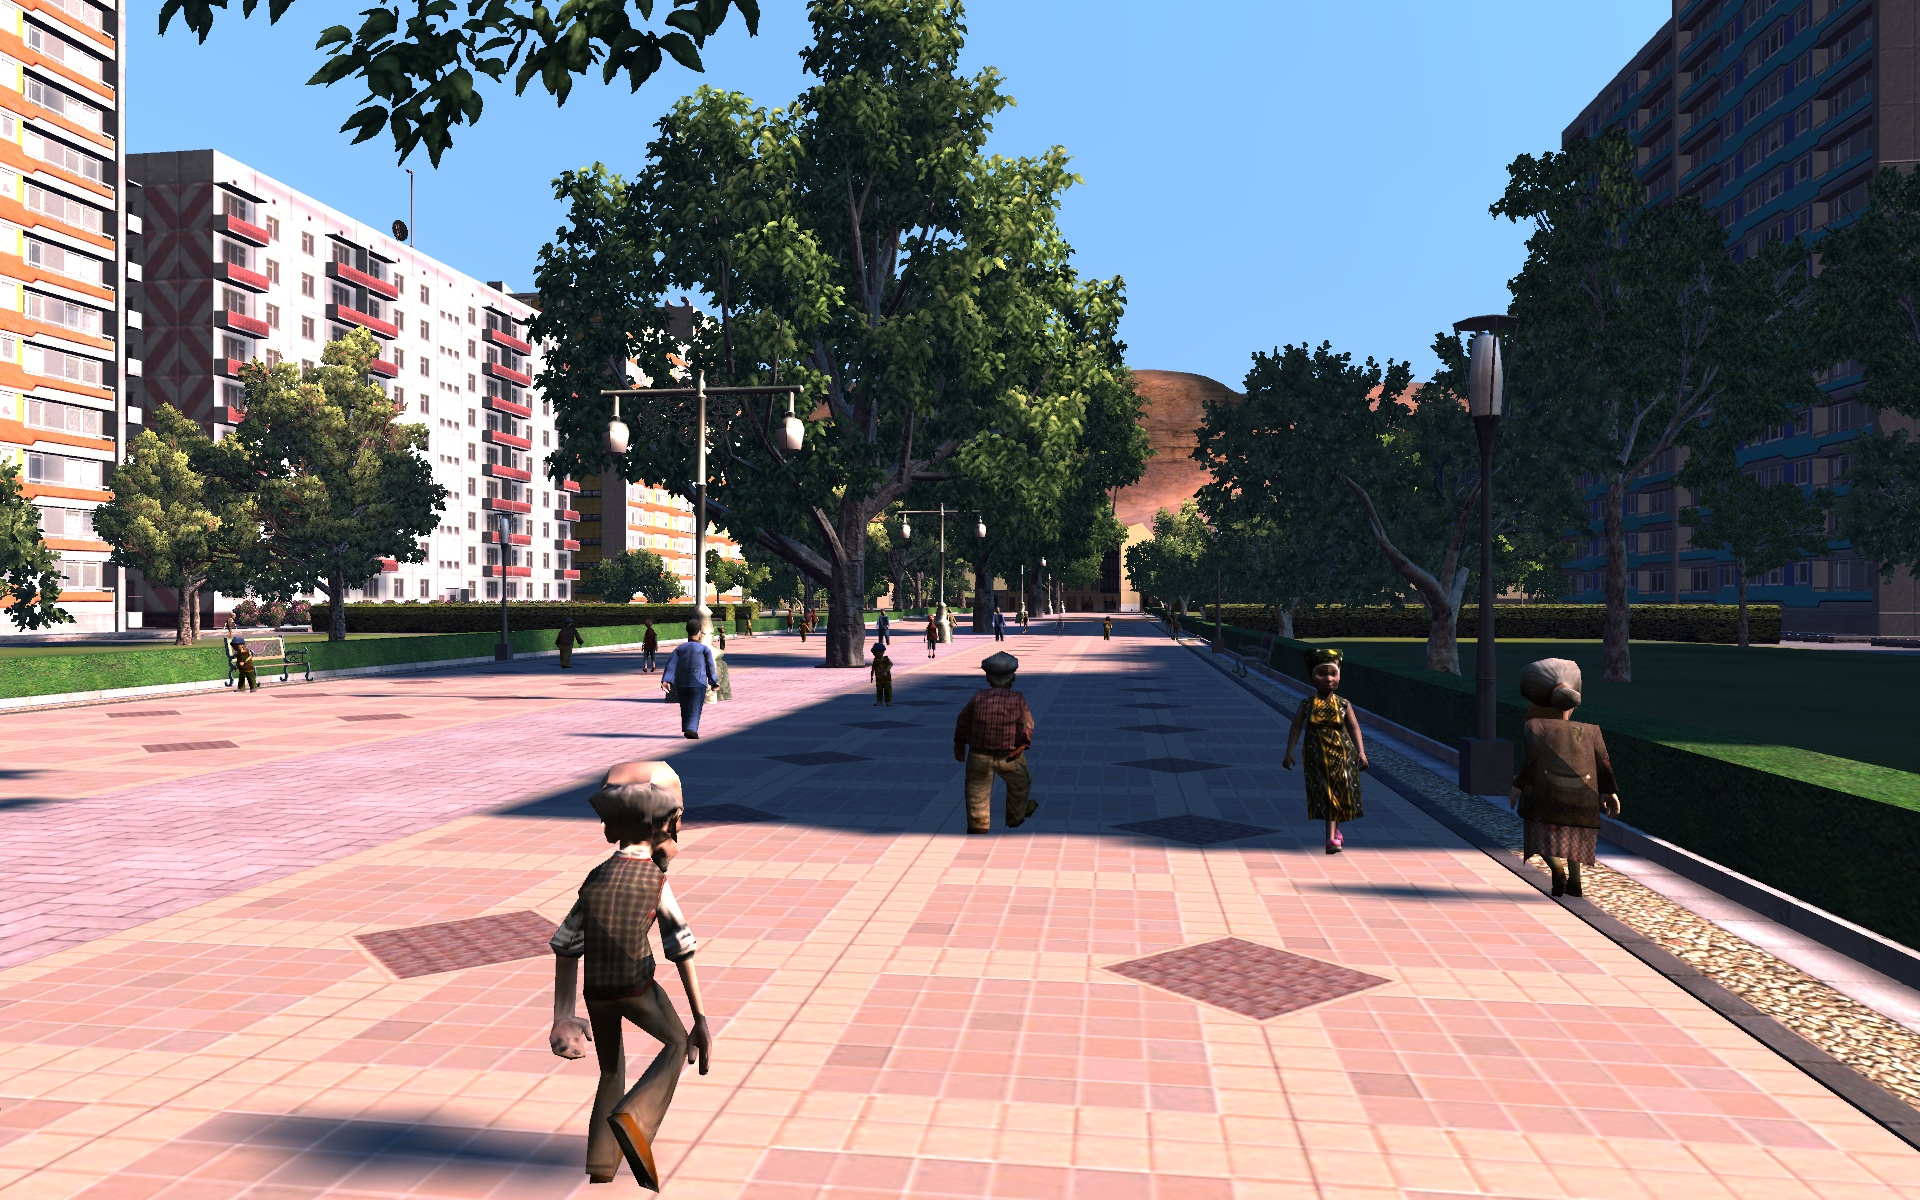 cxl_screenshot_yekavalov_405.jpg